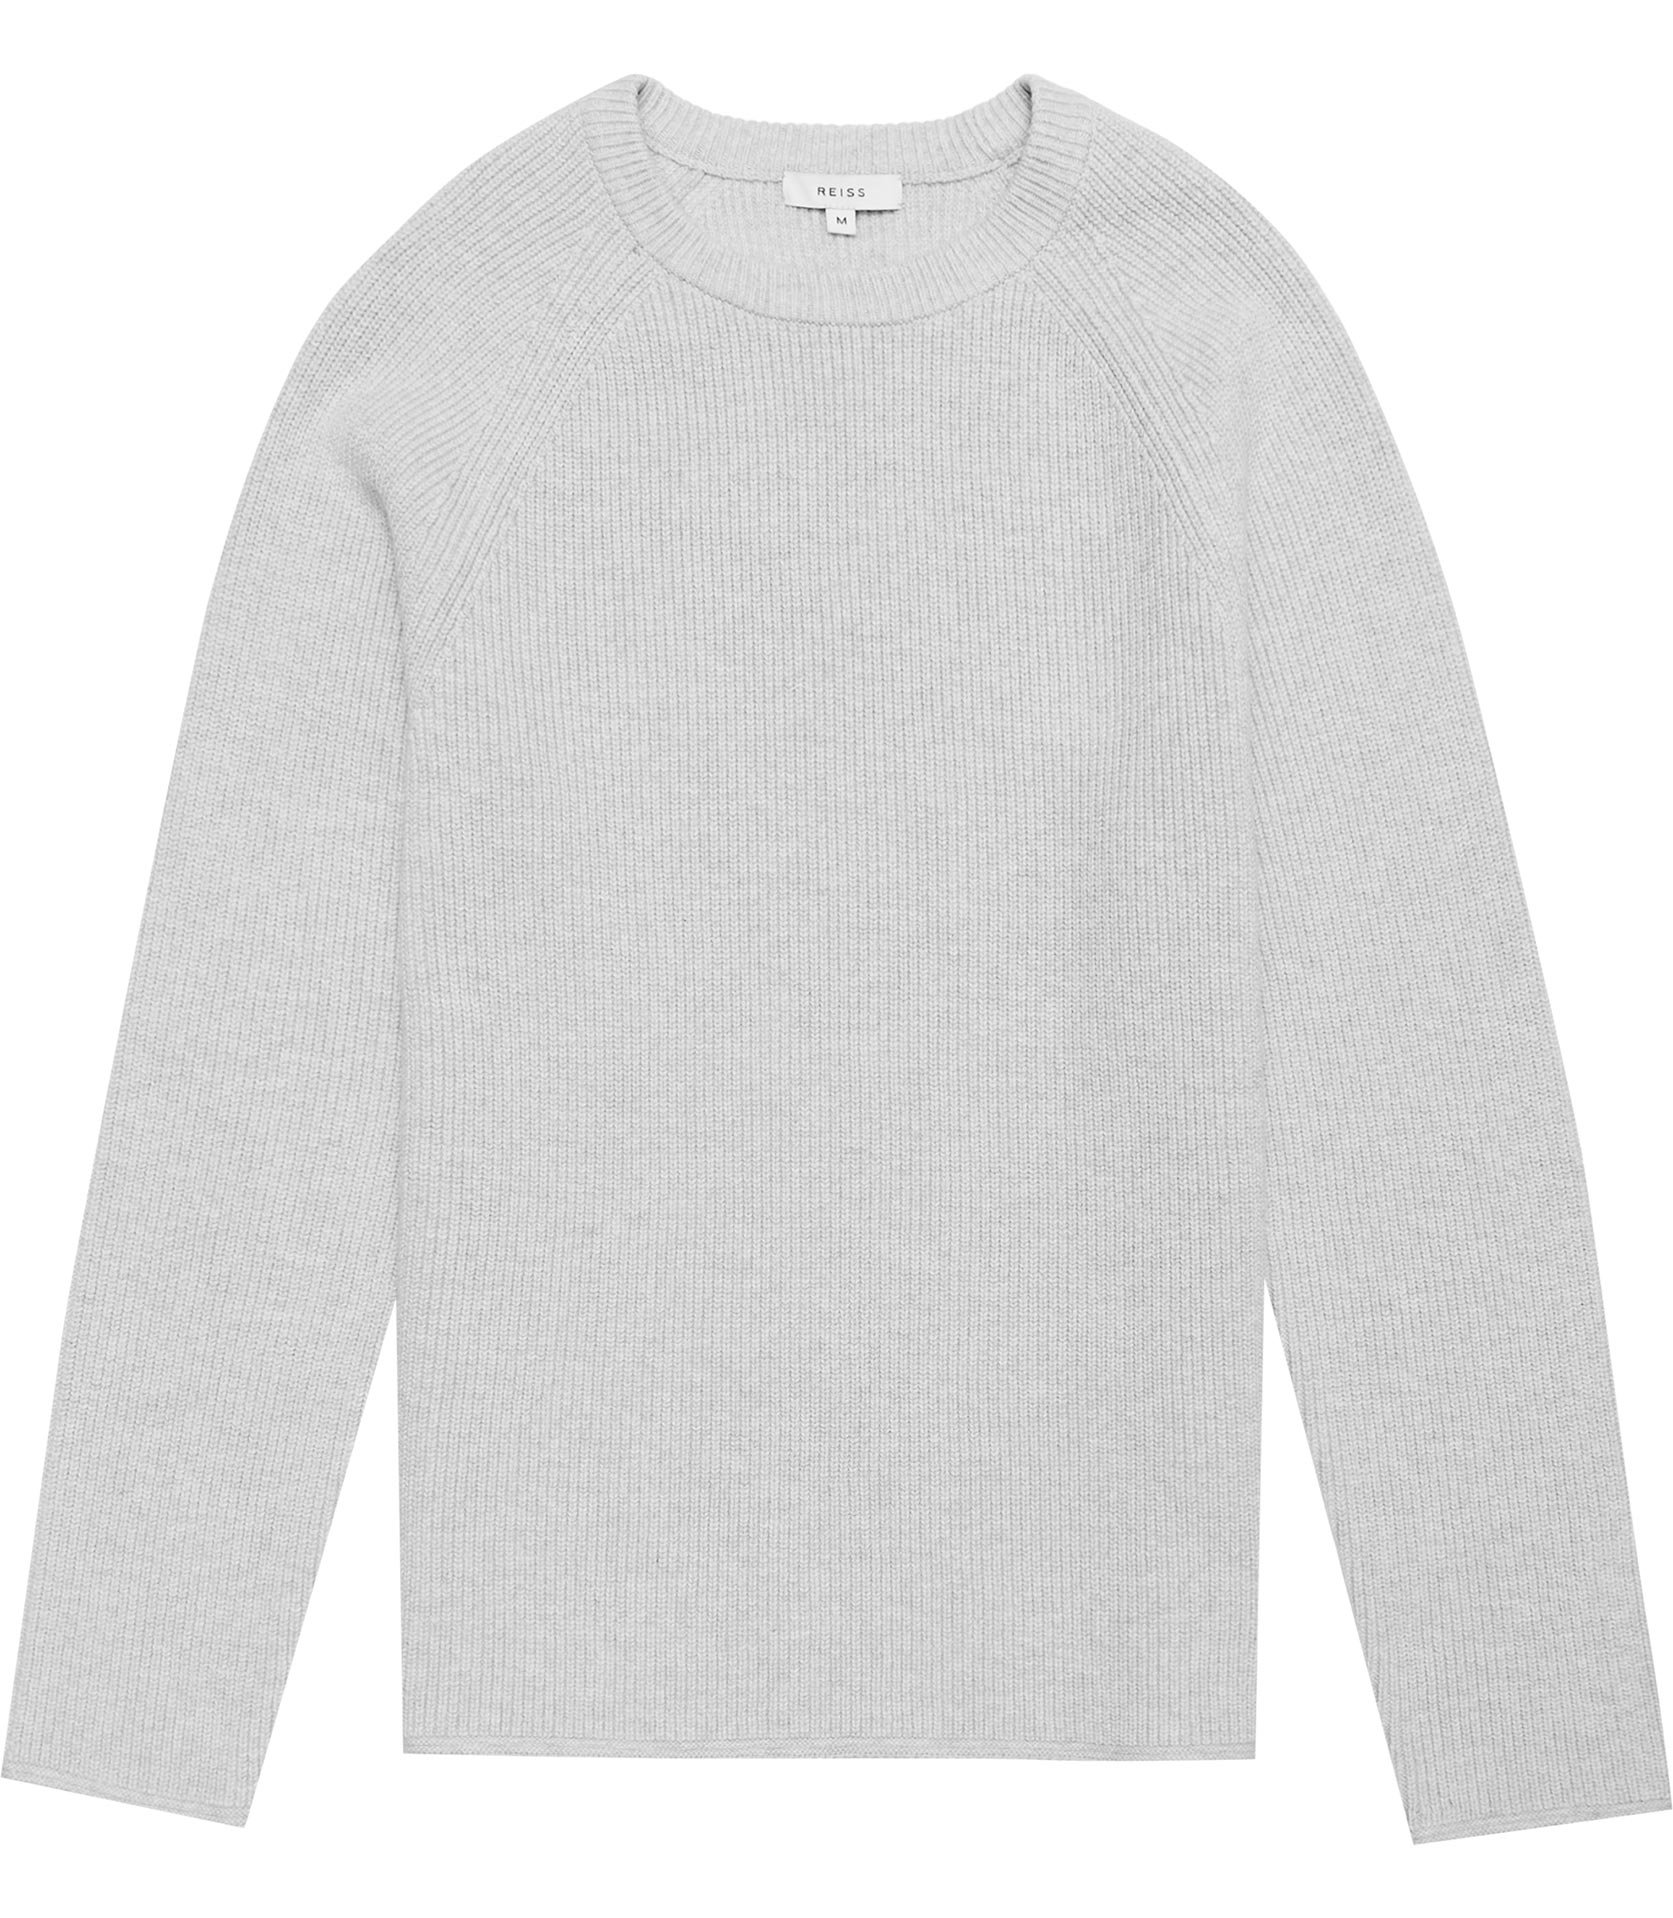 Reiss Greymelange Emory Ribbed Cotton Jumper